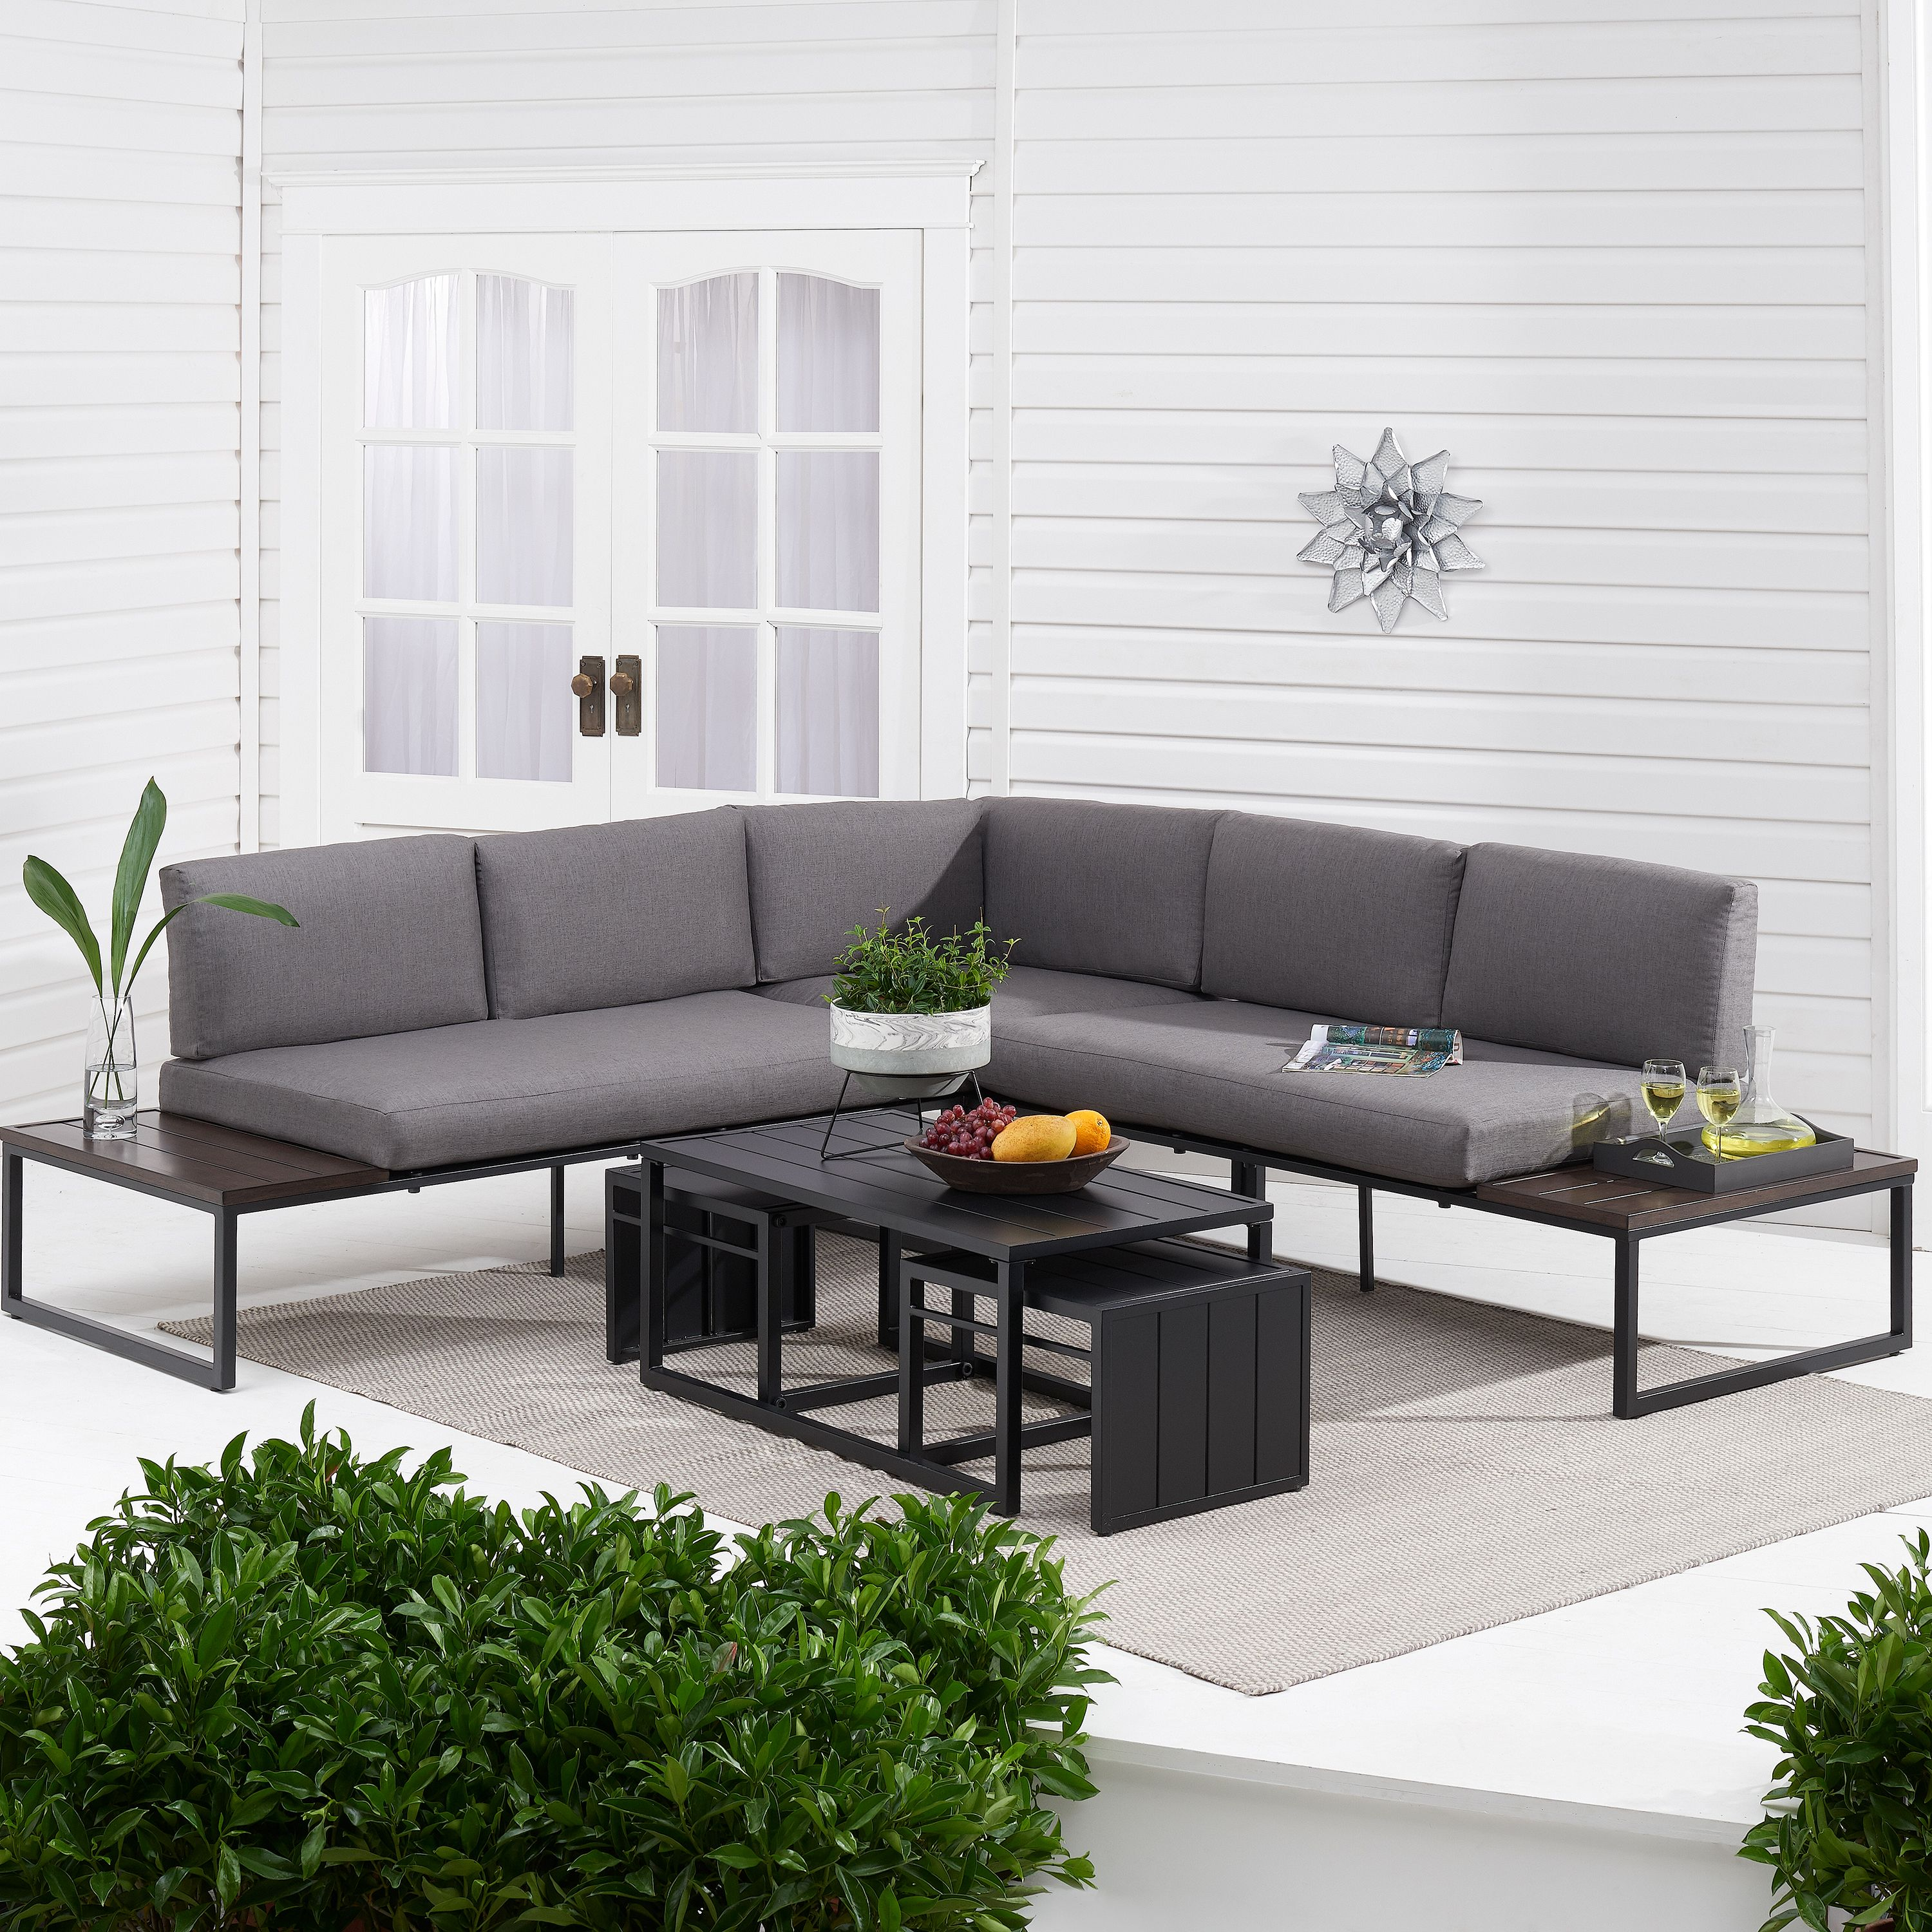 Better Homes & Gardens Kolton 3-Piece Patio Sectional Set with Gray Cushions